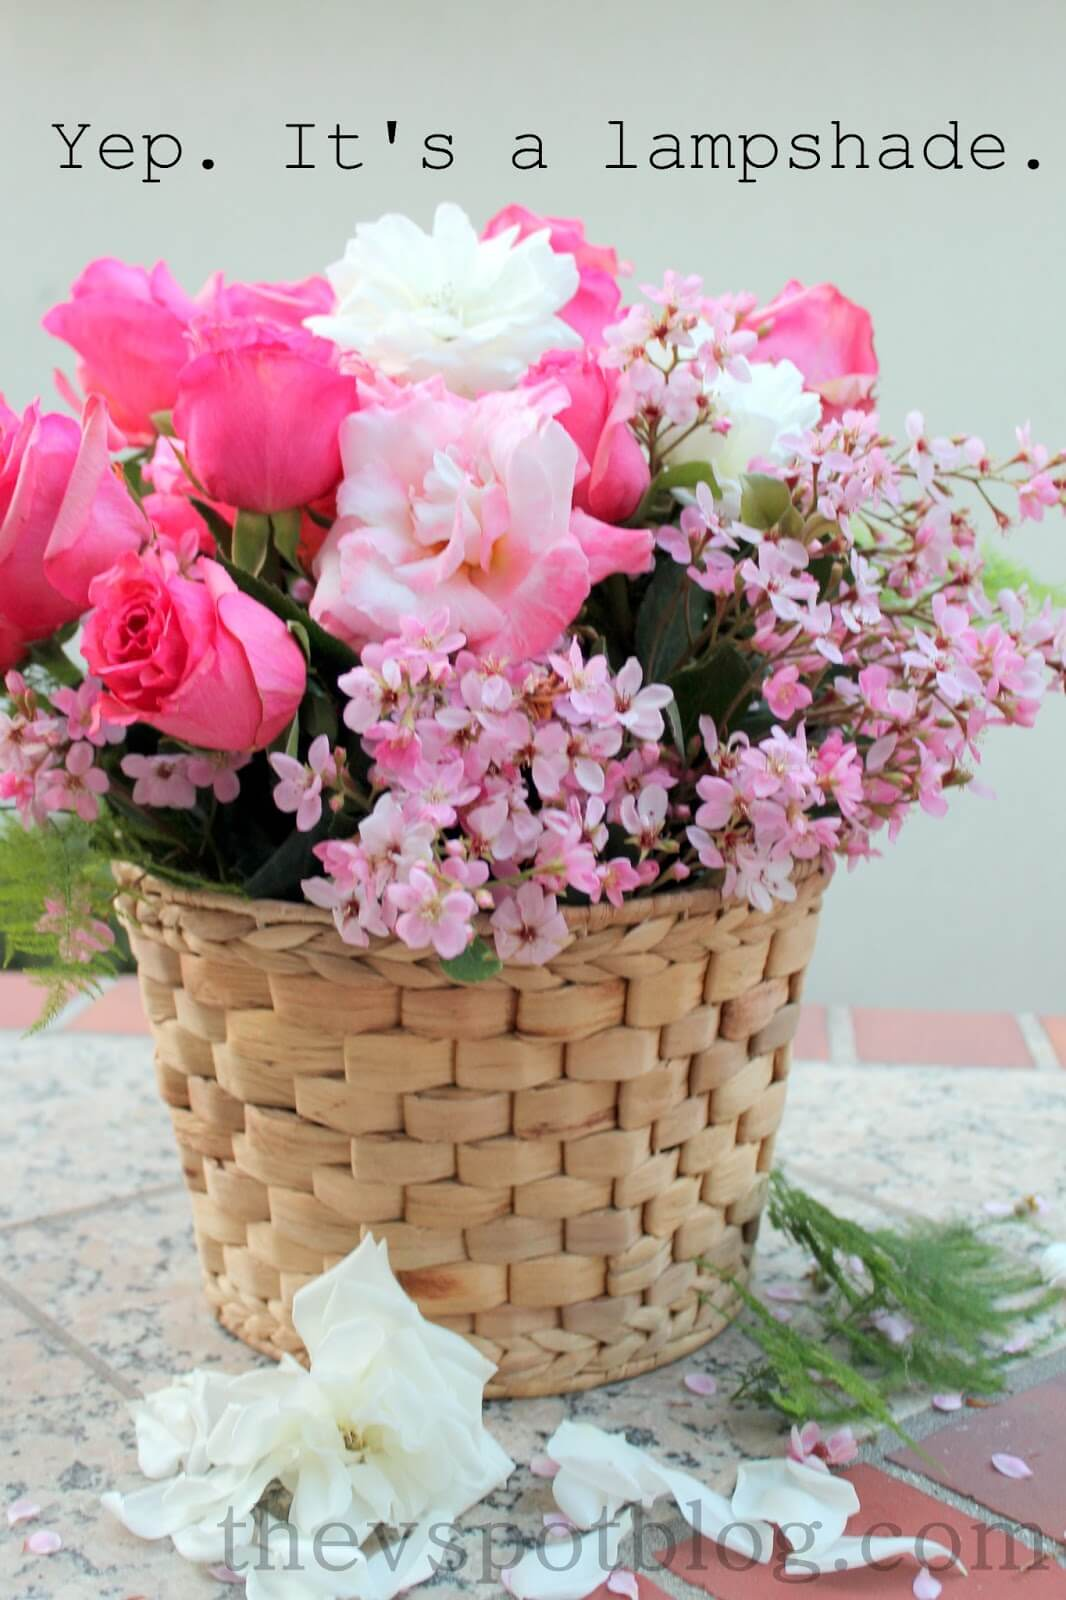 Lampshade Basket with Vibrant Pink Blossoms